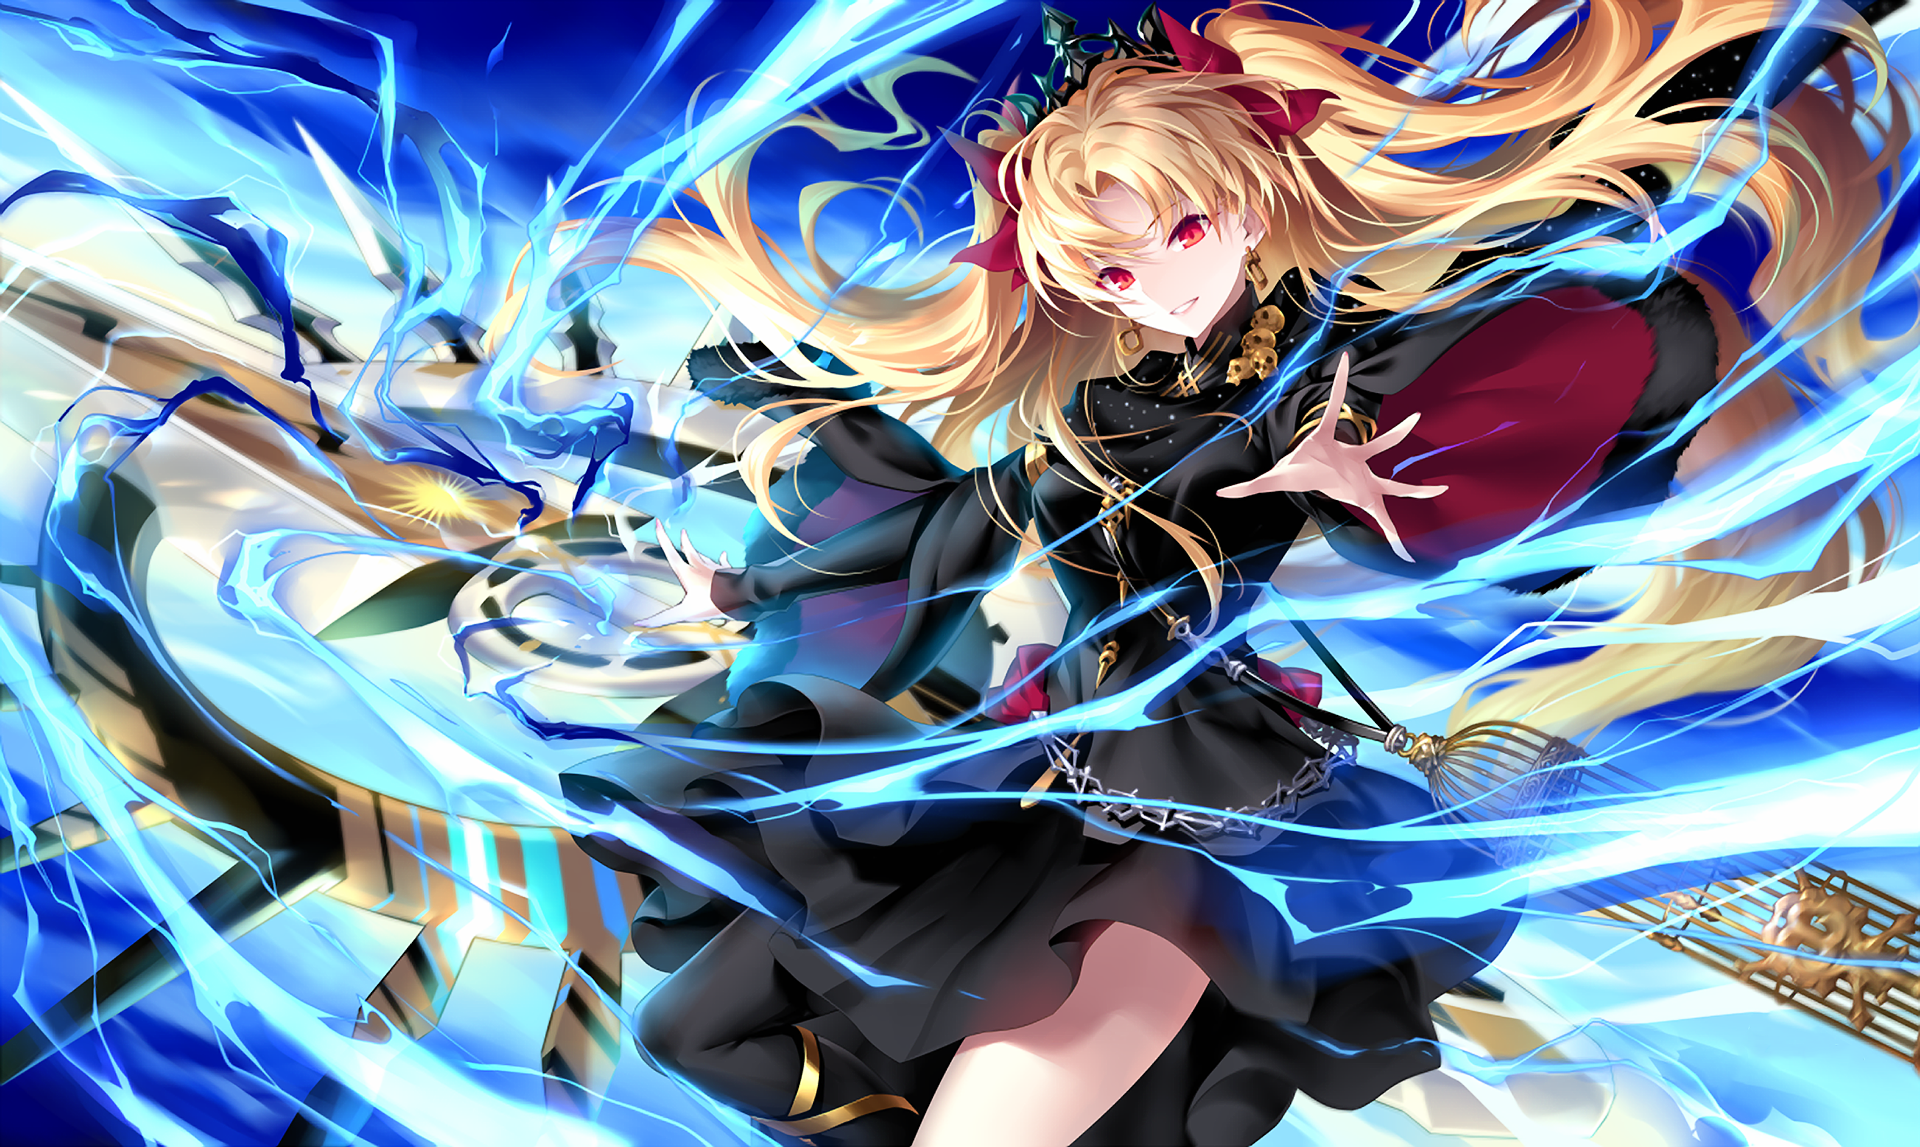 Anime - Fate/Grand Order  Ereshkigal (Fate/Grand Order) Wallpaper